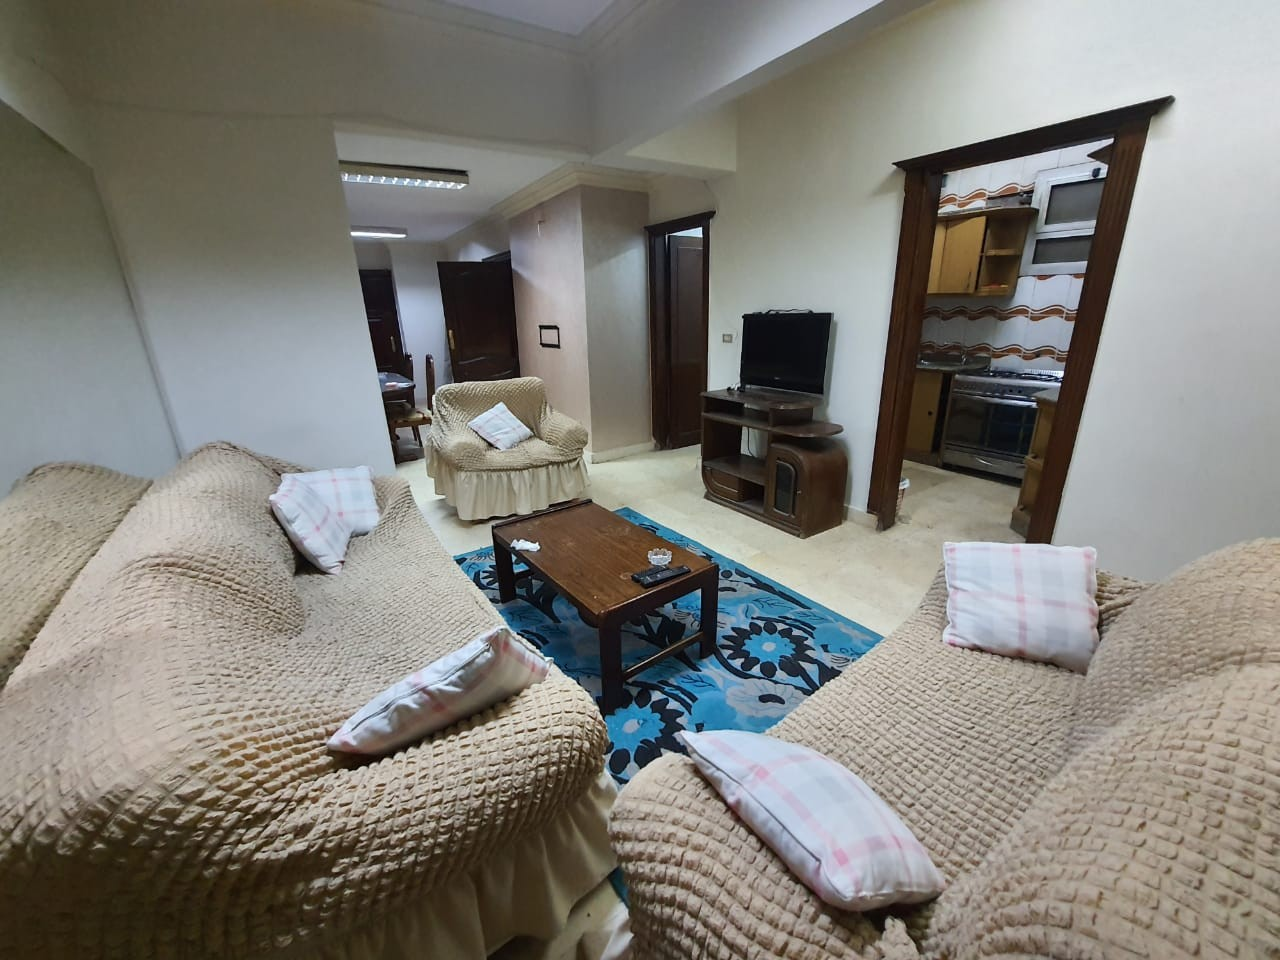 Cozy Furnished Ground Floor Two Bedroom Apartment For Rent In Degla El Maadi - 4886 Featured Image